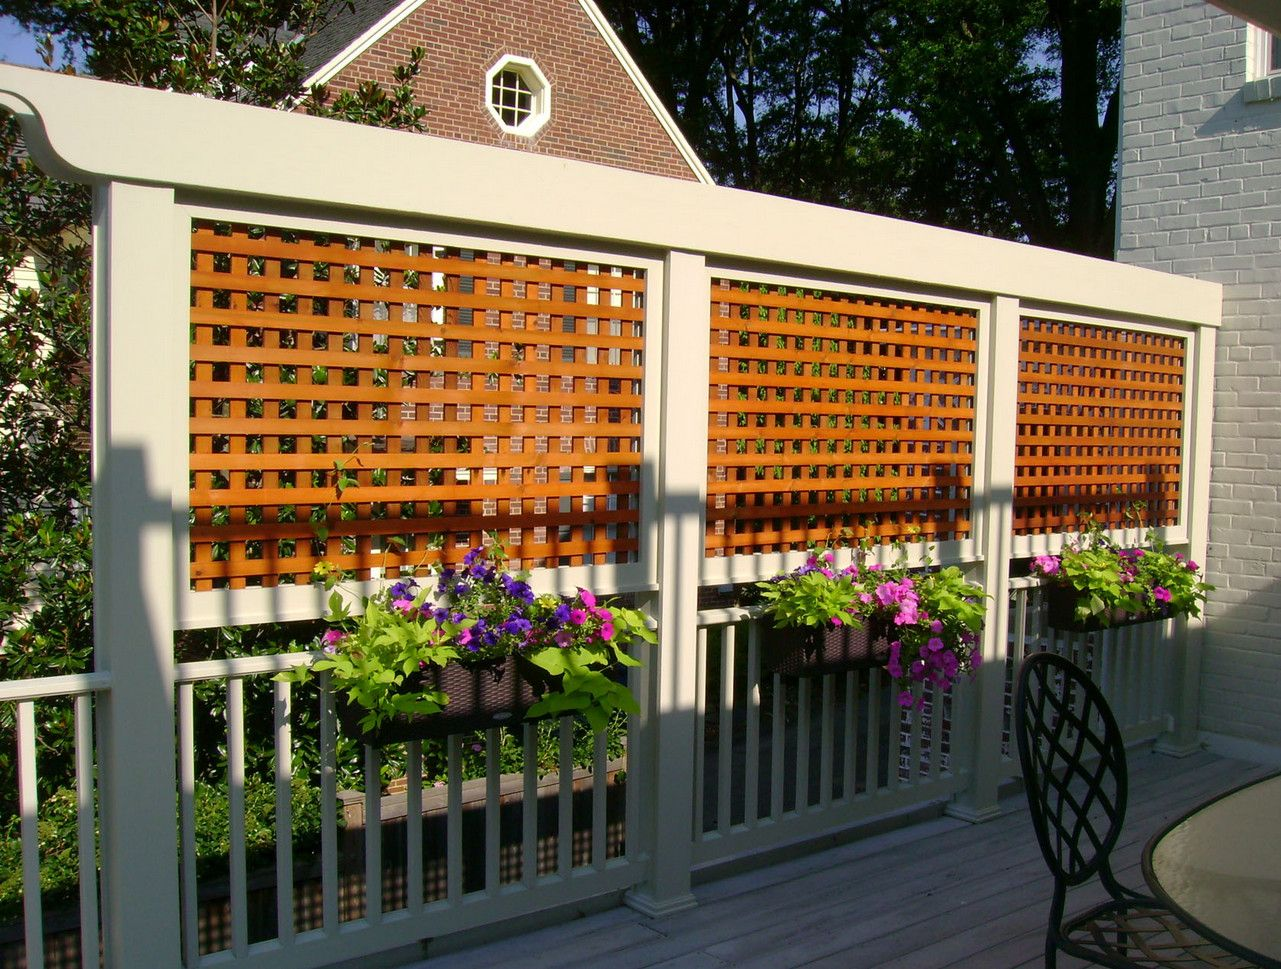 Lattice Privacy Screen For Deck Interesting Ideas For Home Privacy Screen Outdoor Outdoor Privacy Backyard Privacy